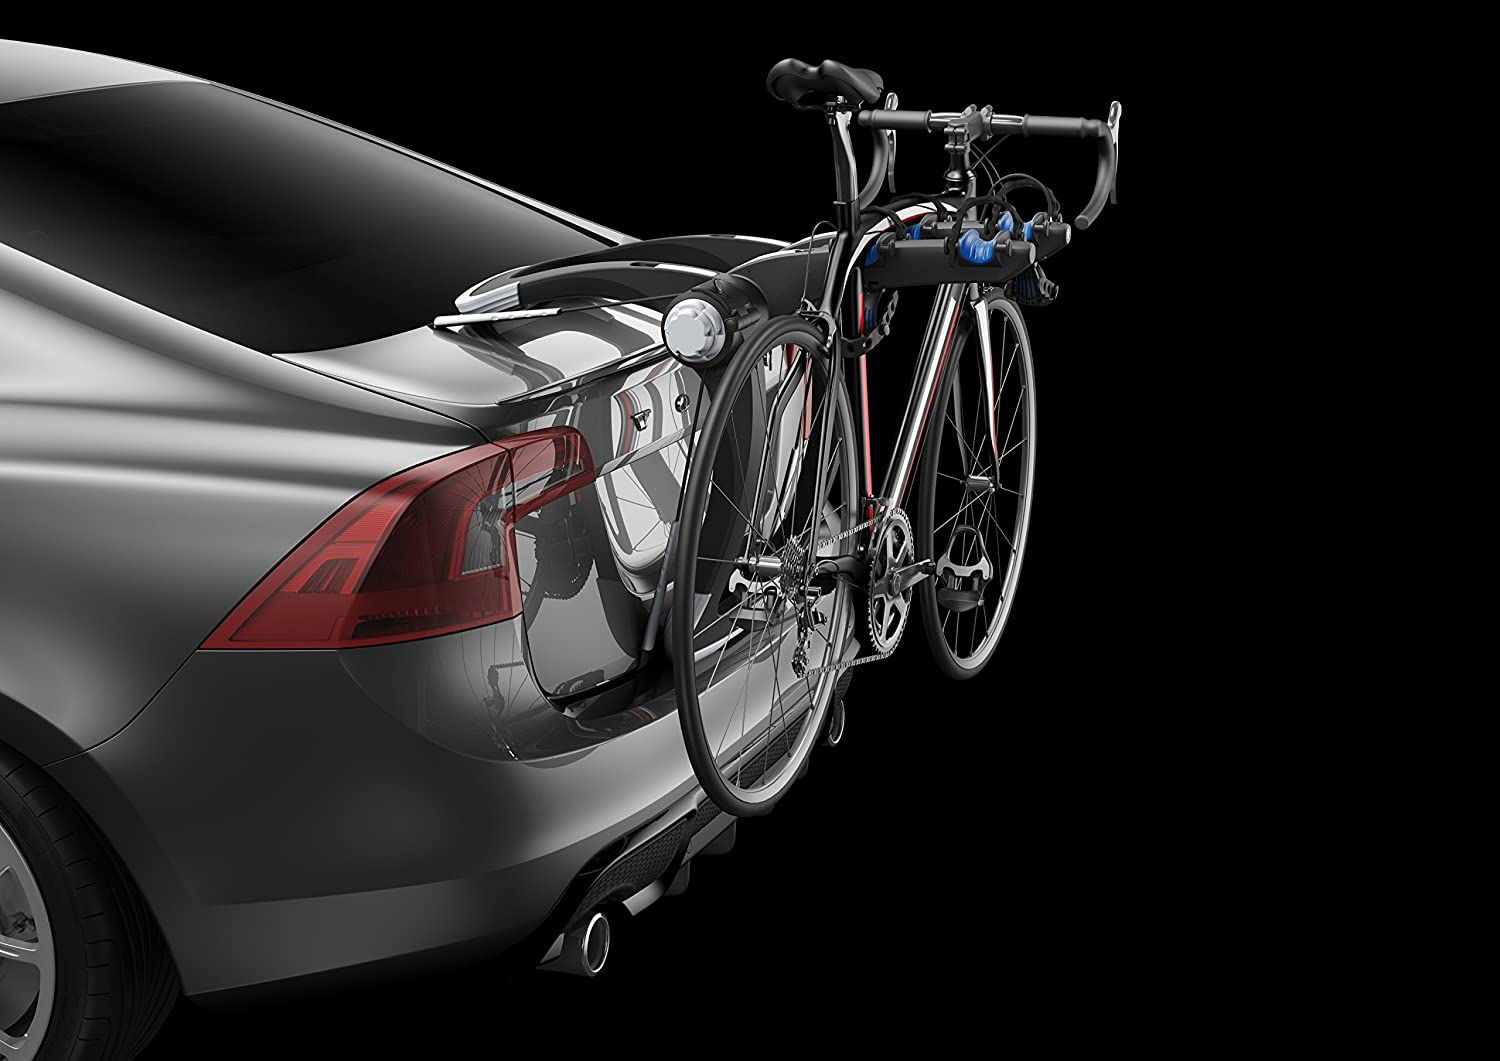 Thule trunk-mounted bike rack review